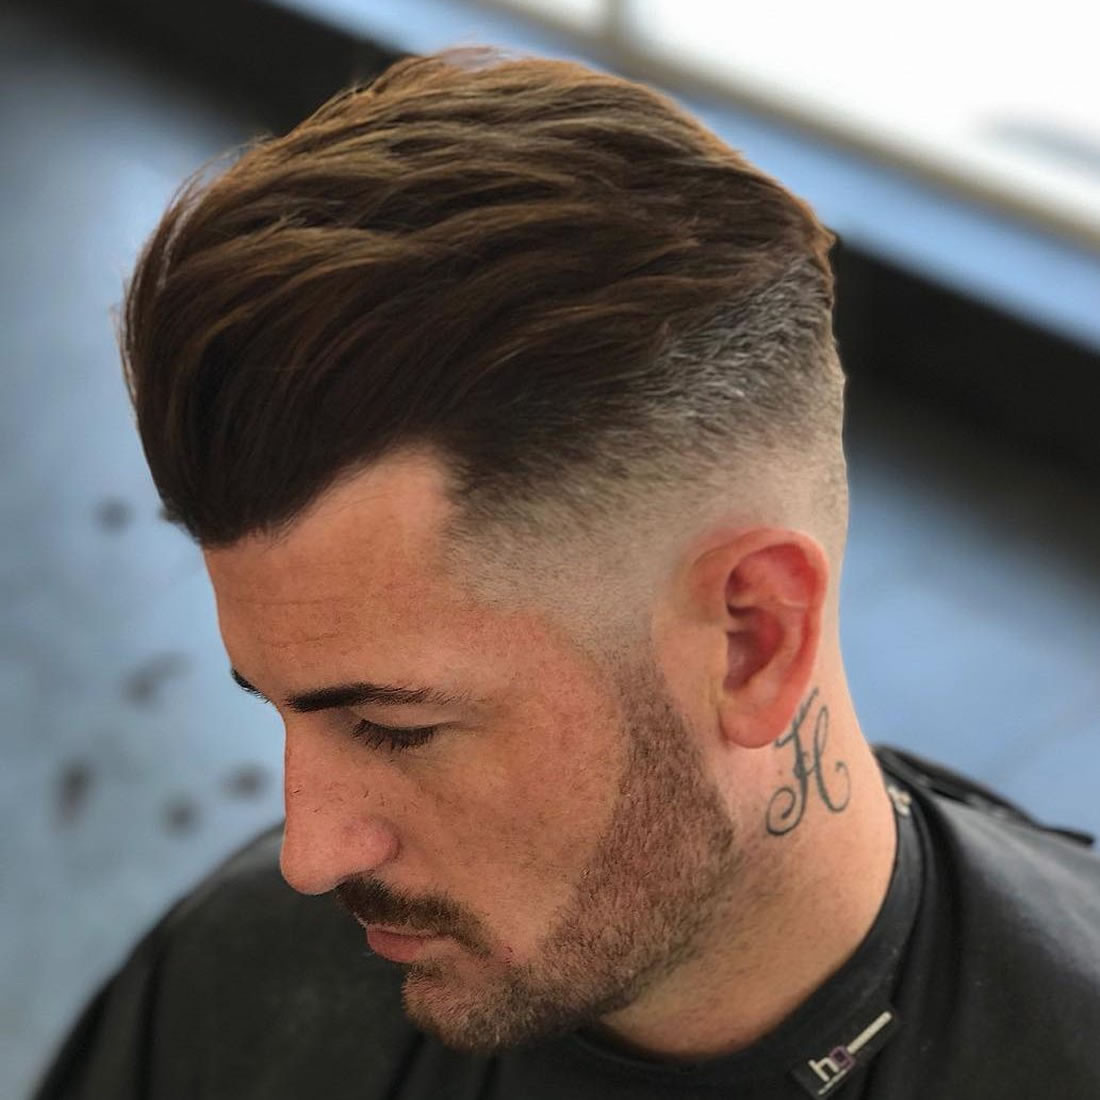 Men Hairstyle 2019 Undercut  Men's Hairstyles 2018 – 2019